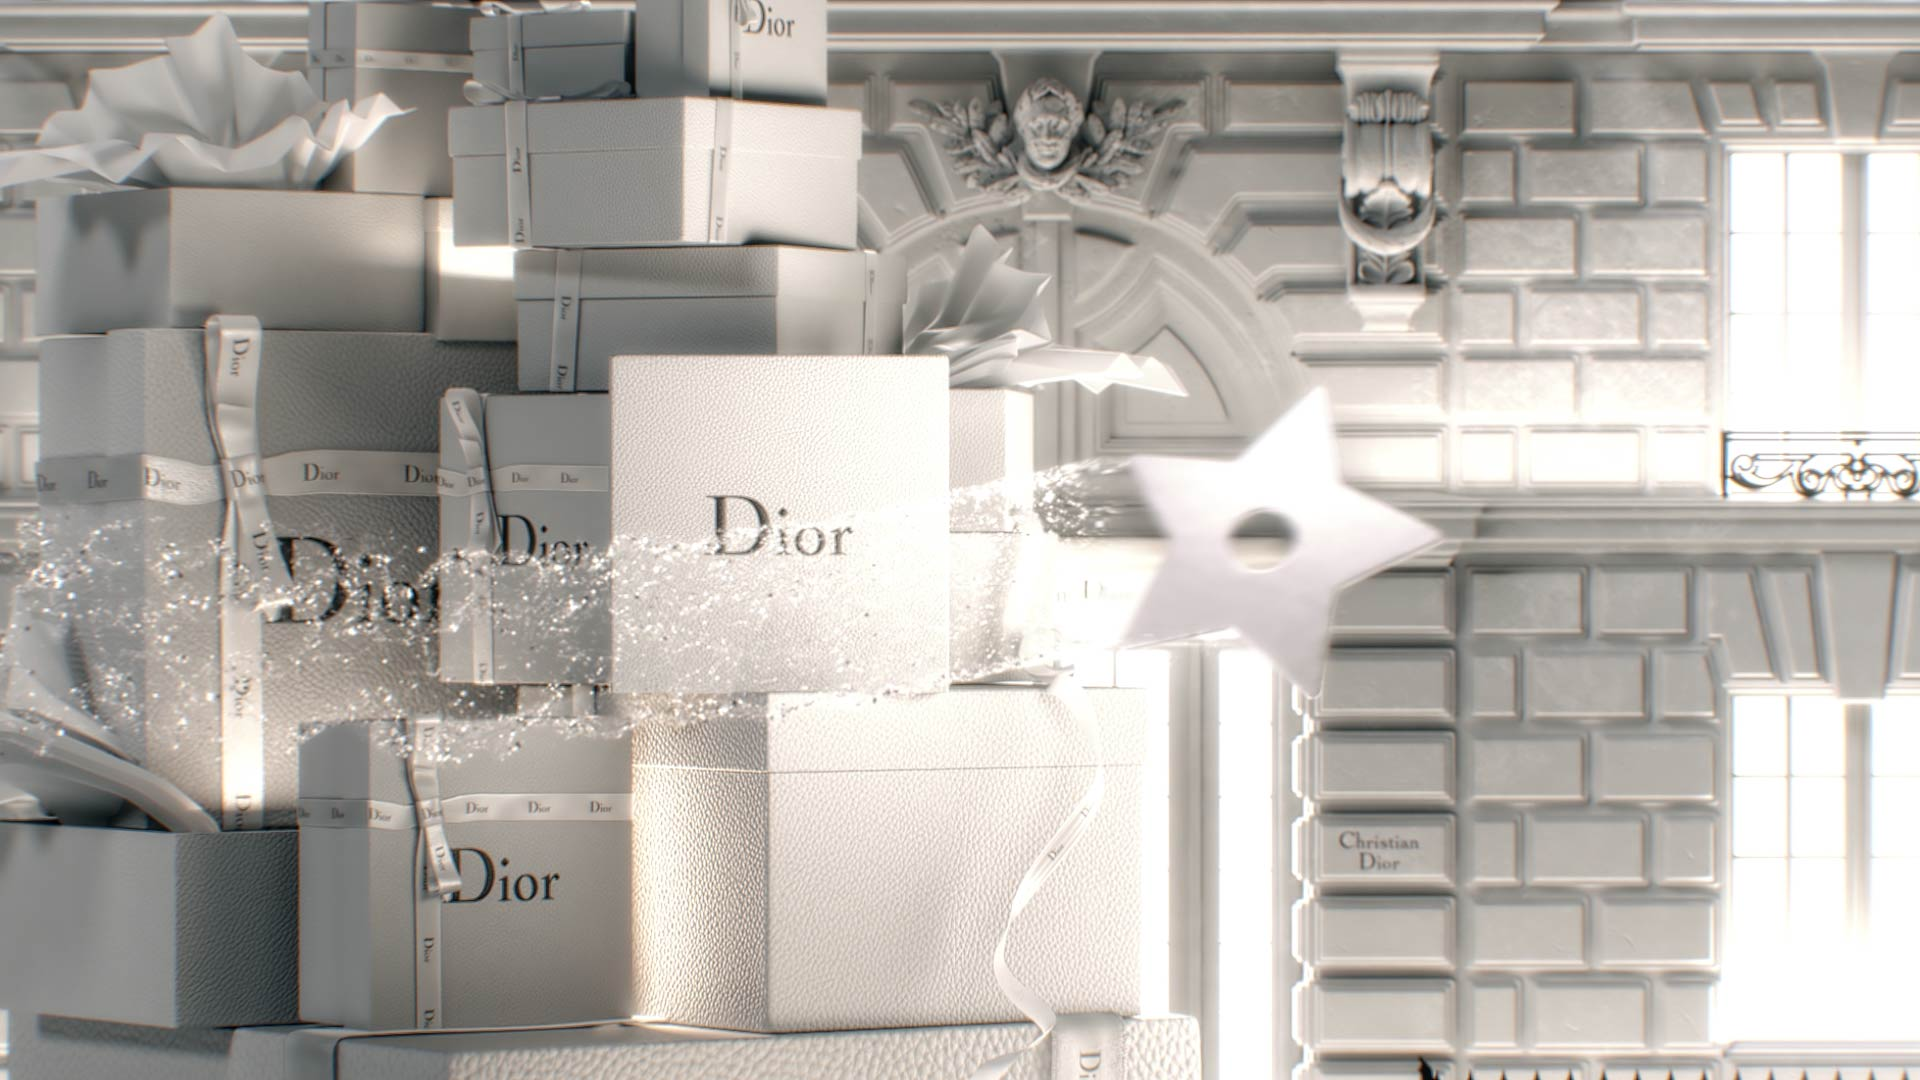 Pile of Dior gift boxes in front of a magical facade in 3D